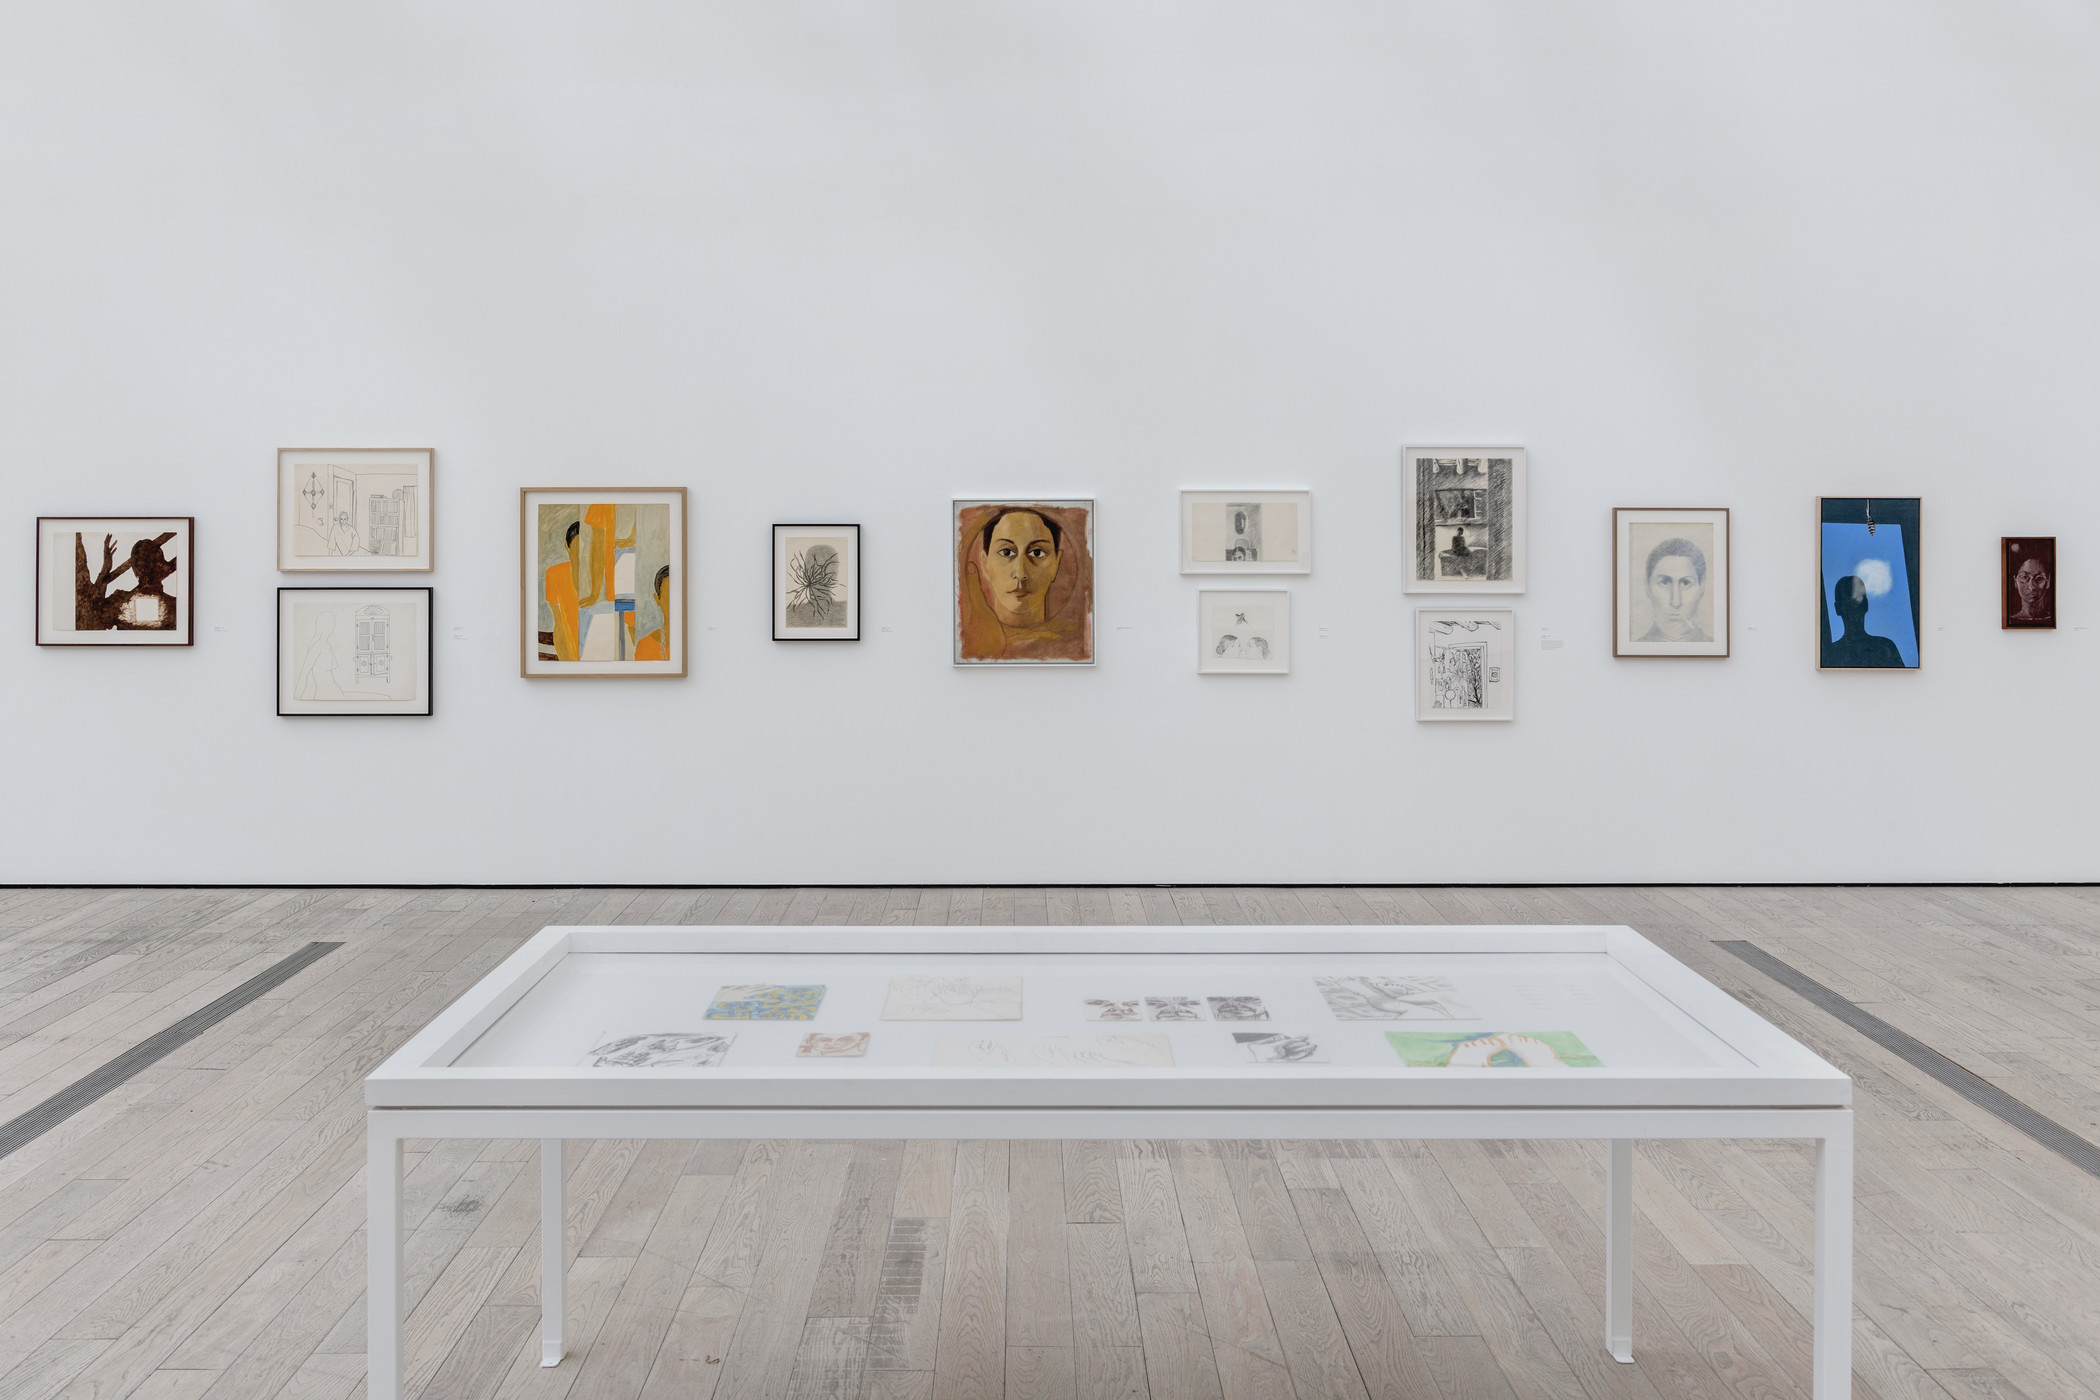 Installation view, Luchita Hurtado: I Live I Die I Will Be Reborn, Los Angeles County Museum of Art, February 15–May 3, 2020, art © Luchita Hurtado, photo © Museum Associates/LACMA